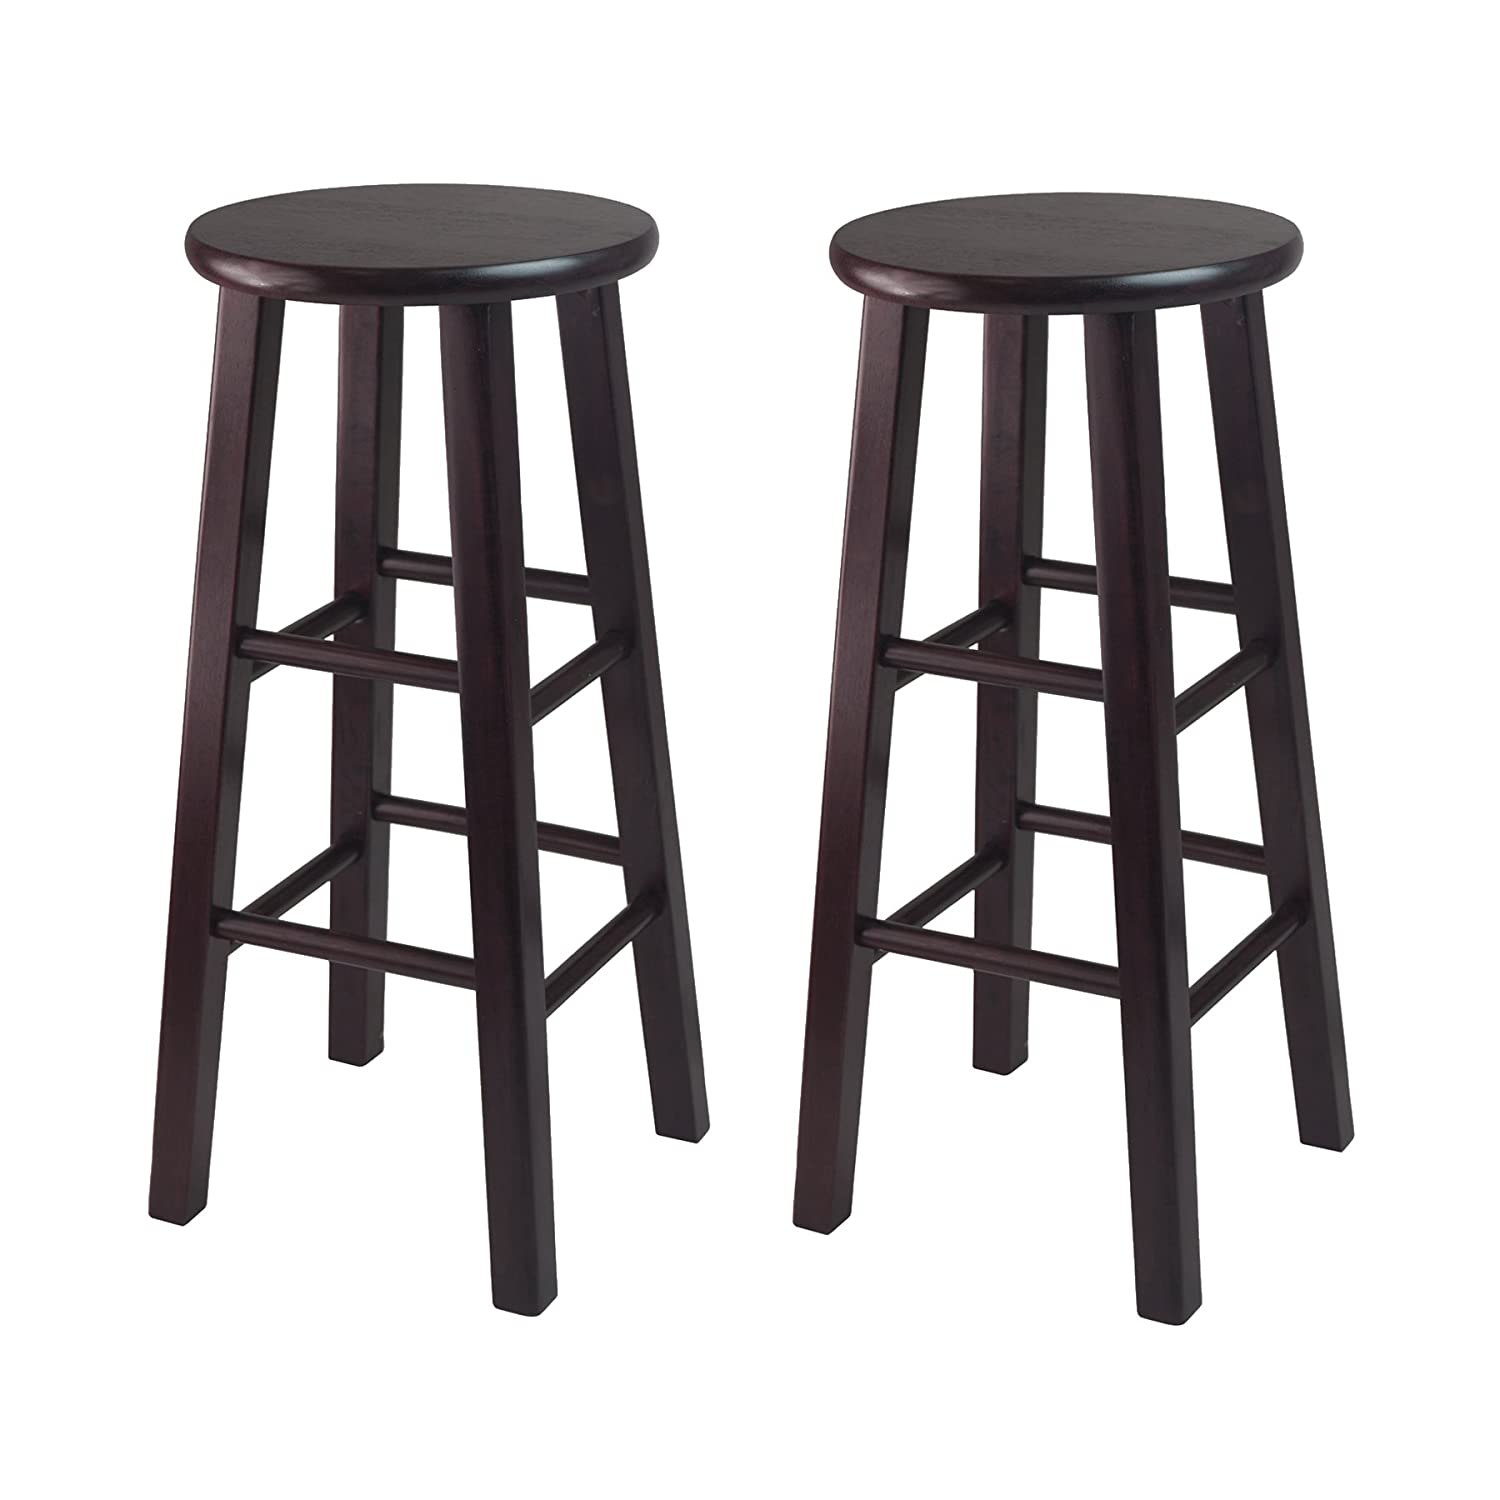 Winsome Wood Bar Stool with Square Legs, 29-Inch, Espresso, Set of 2 92260